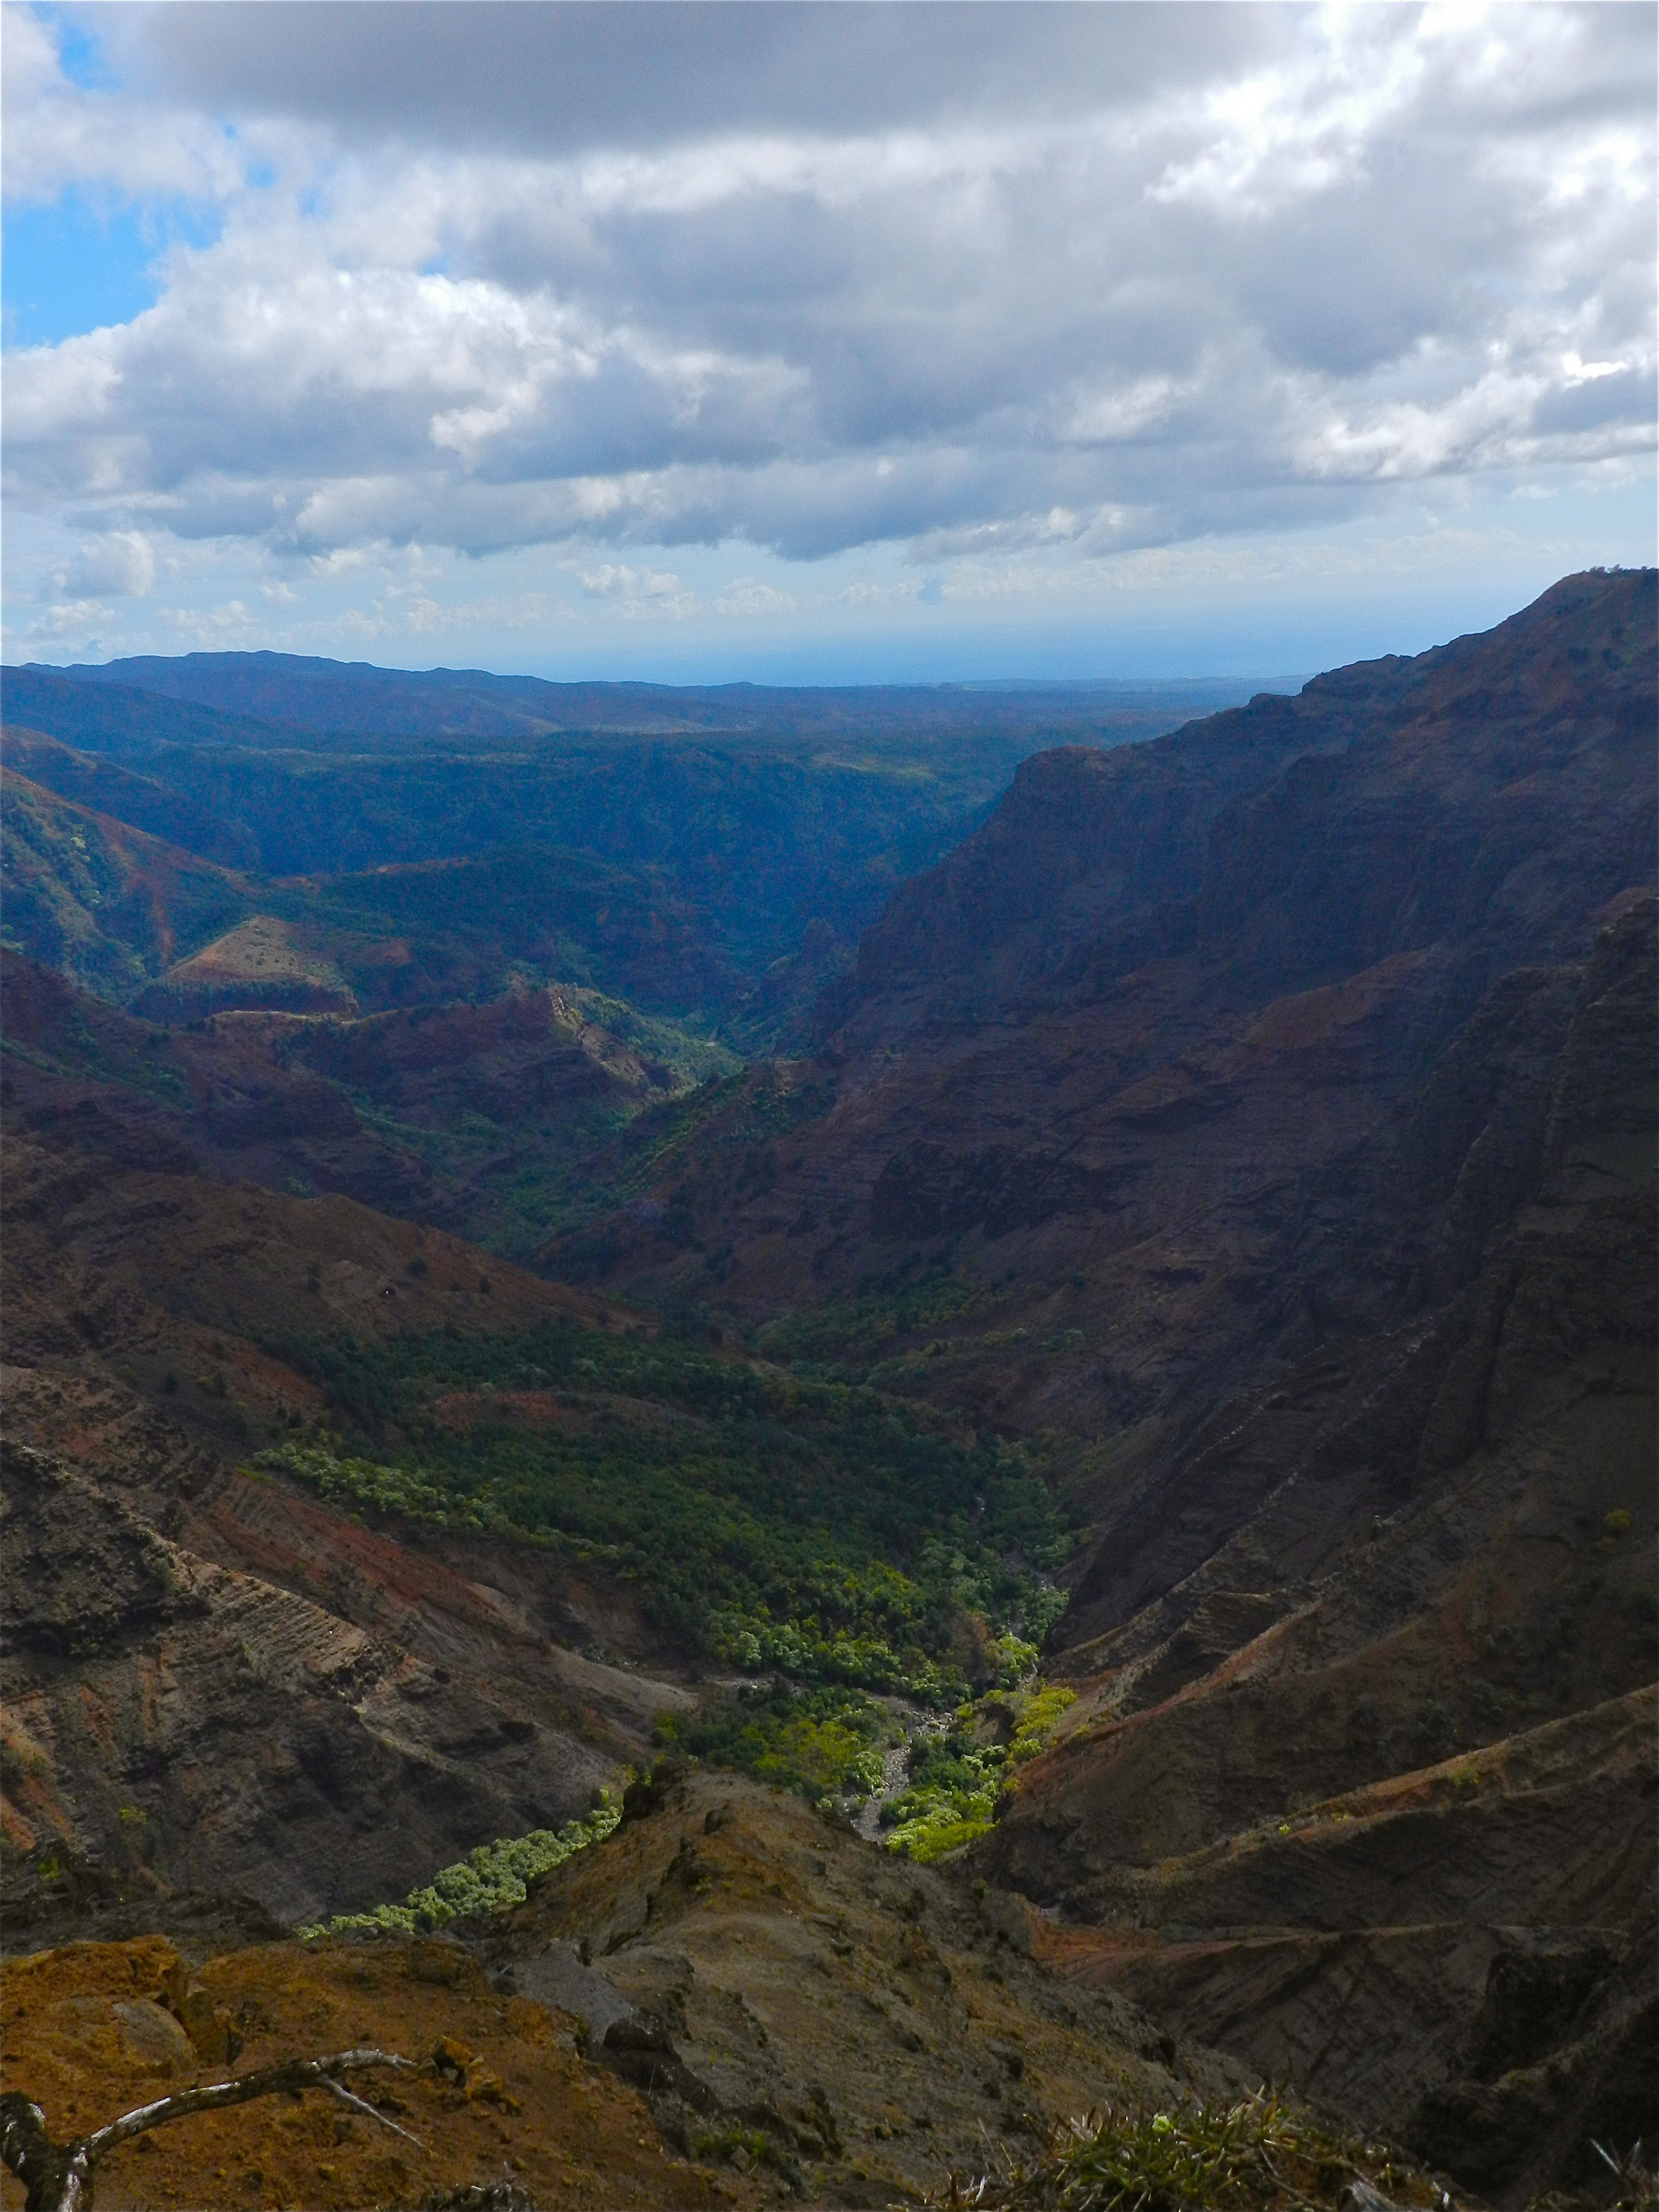 Waimea Canyon (Photo: Elsa Flores Almaraz)